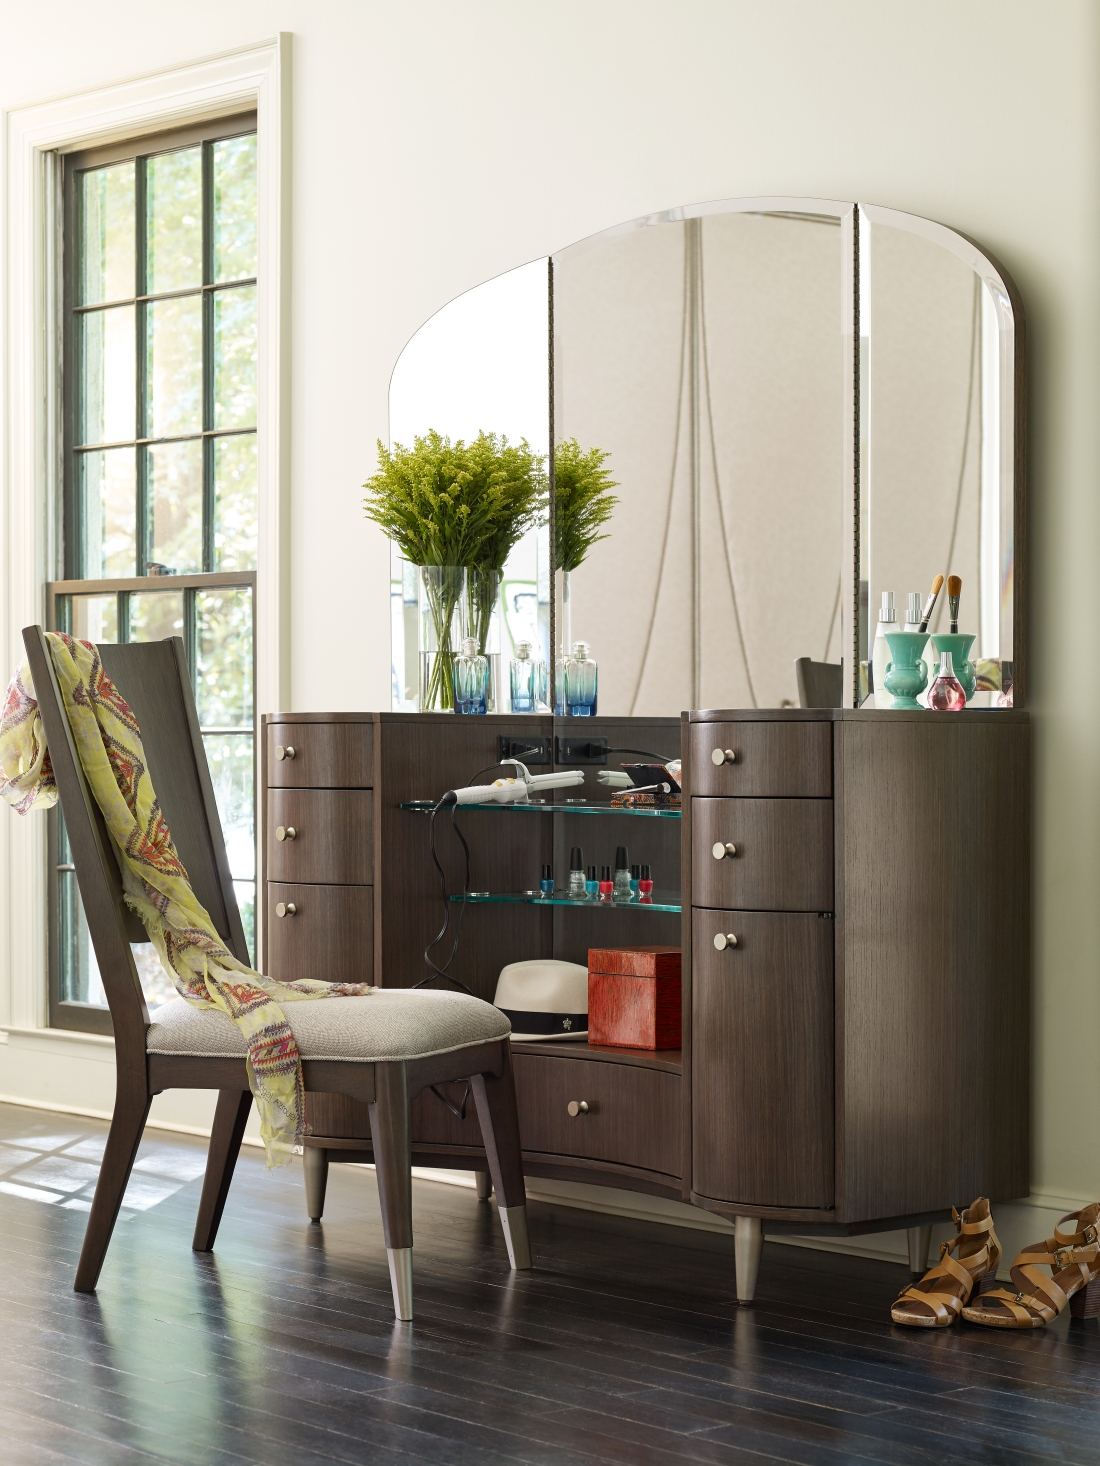 LIFESTYLE-VANITY-SOHO-EL-DORADO-FURNITURE-LEGA-69-01